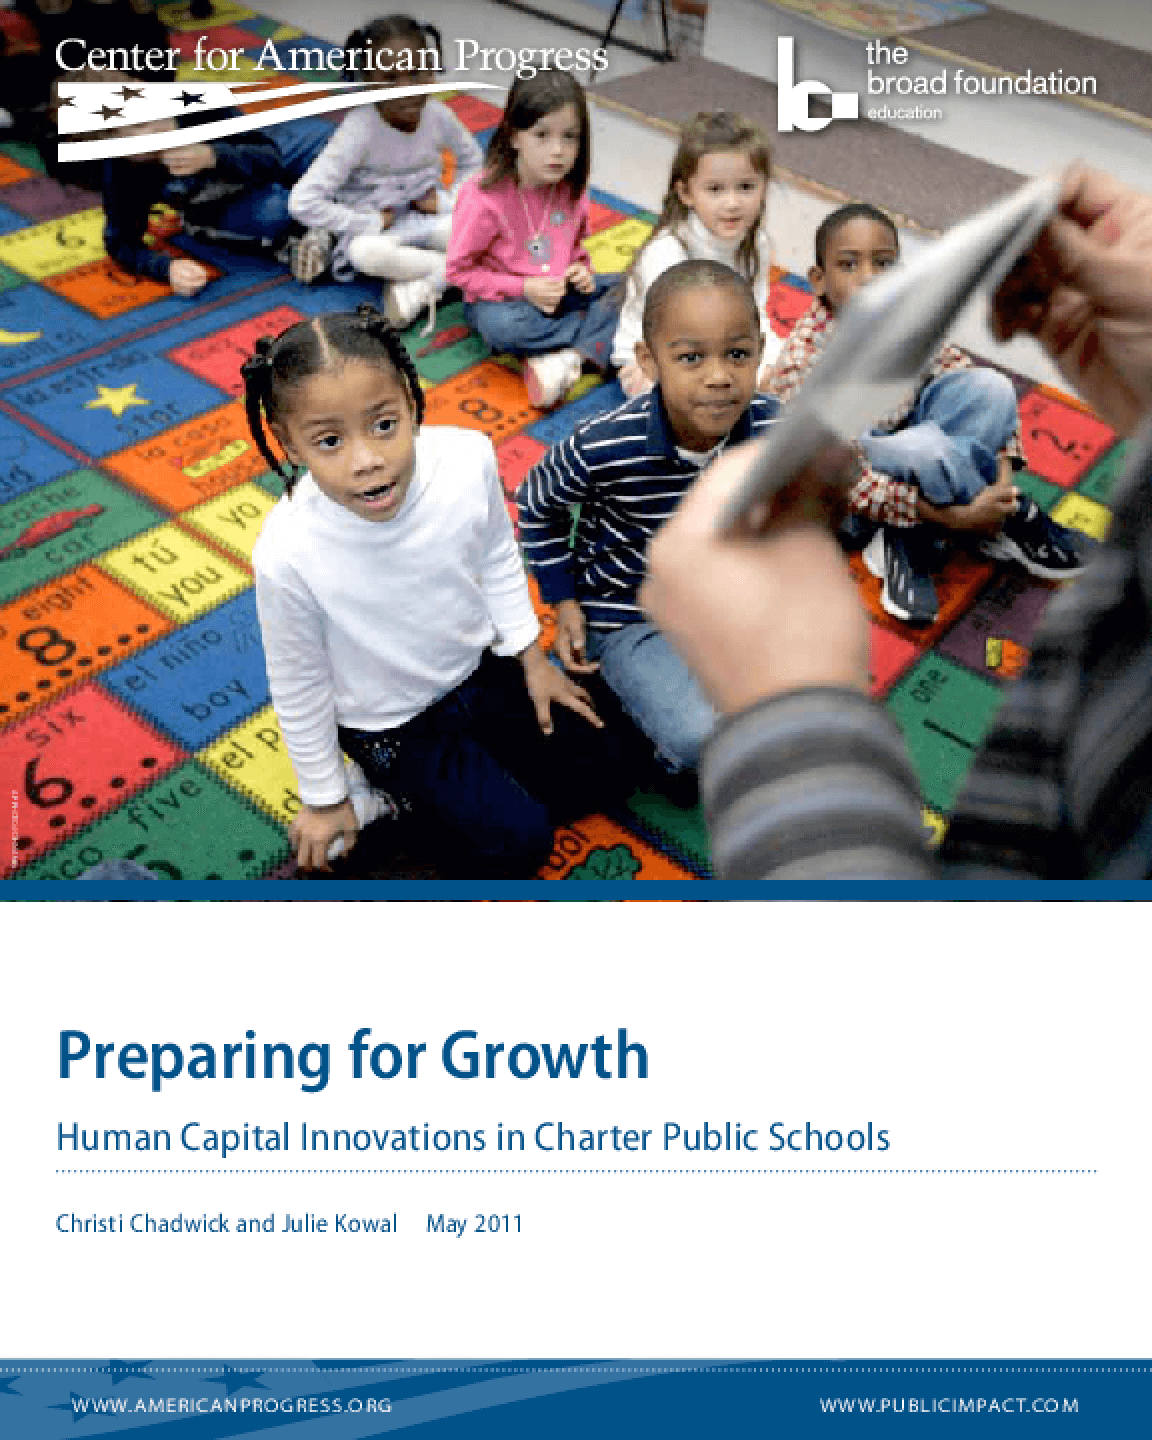 Preparing for Growth: Human Capital Innovations in Charter Public Schools